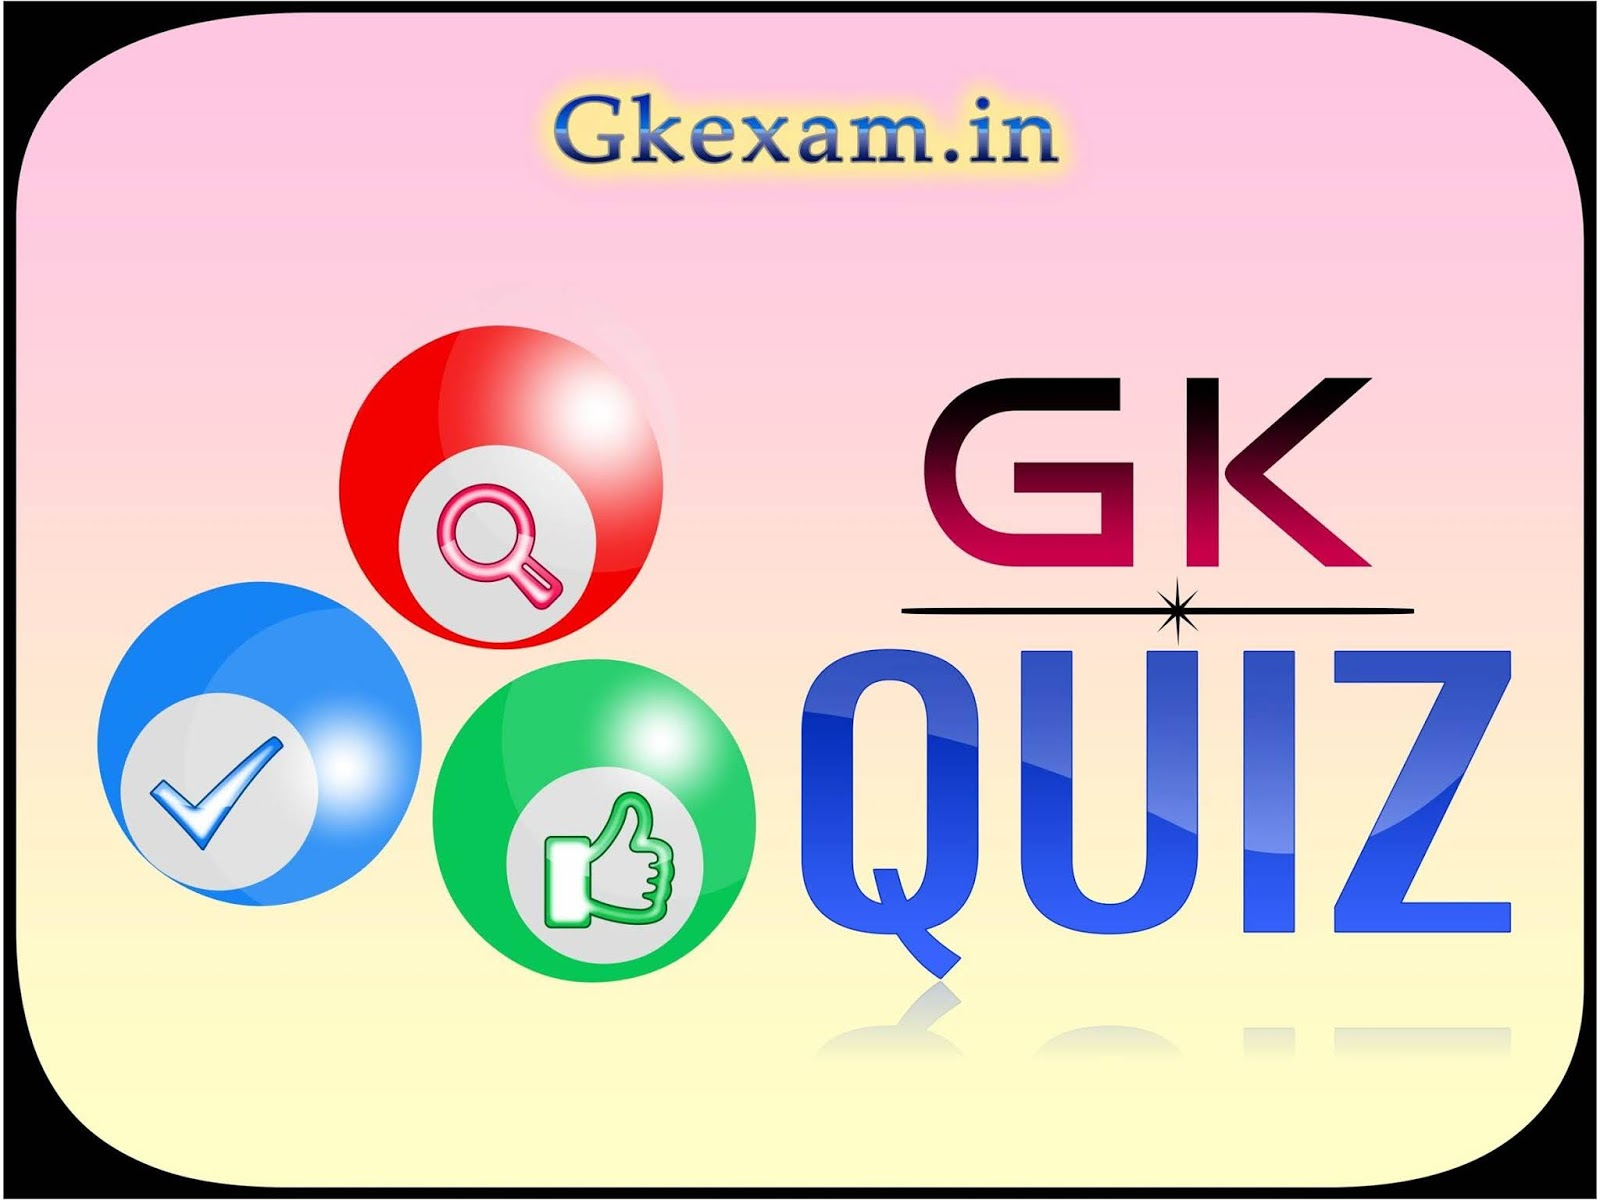 gk quiz - general knowledge questions